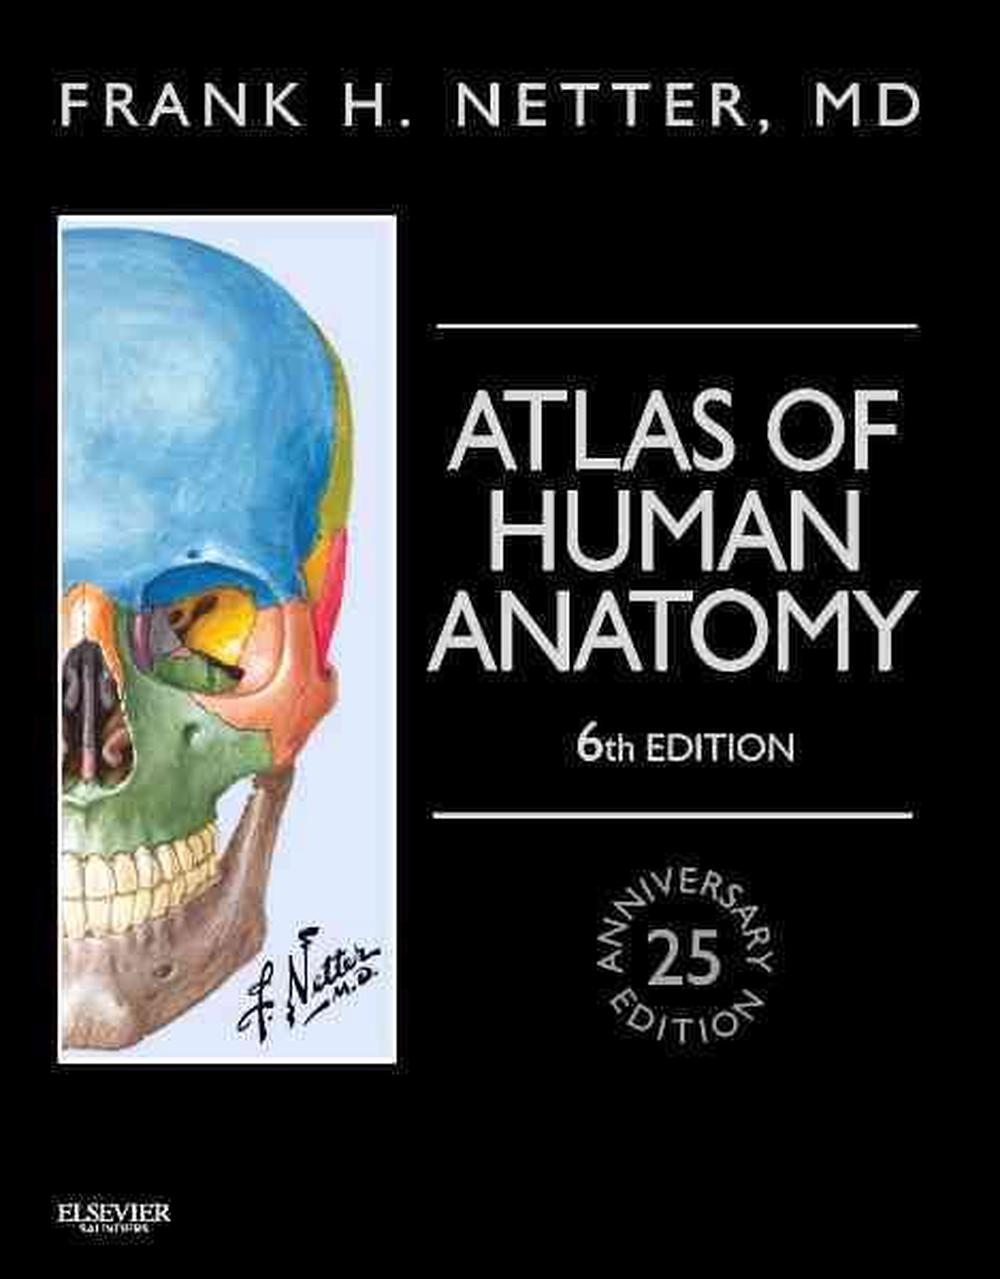 Atlas Of Human Anatomy Including Netterreference Access With